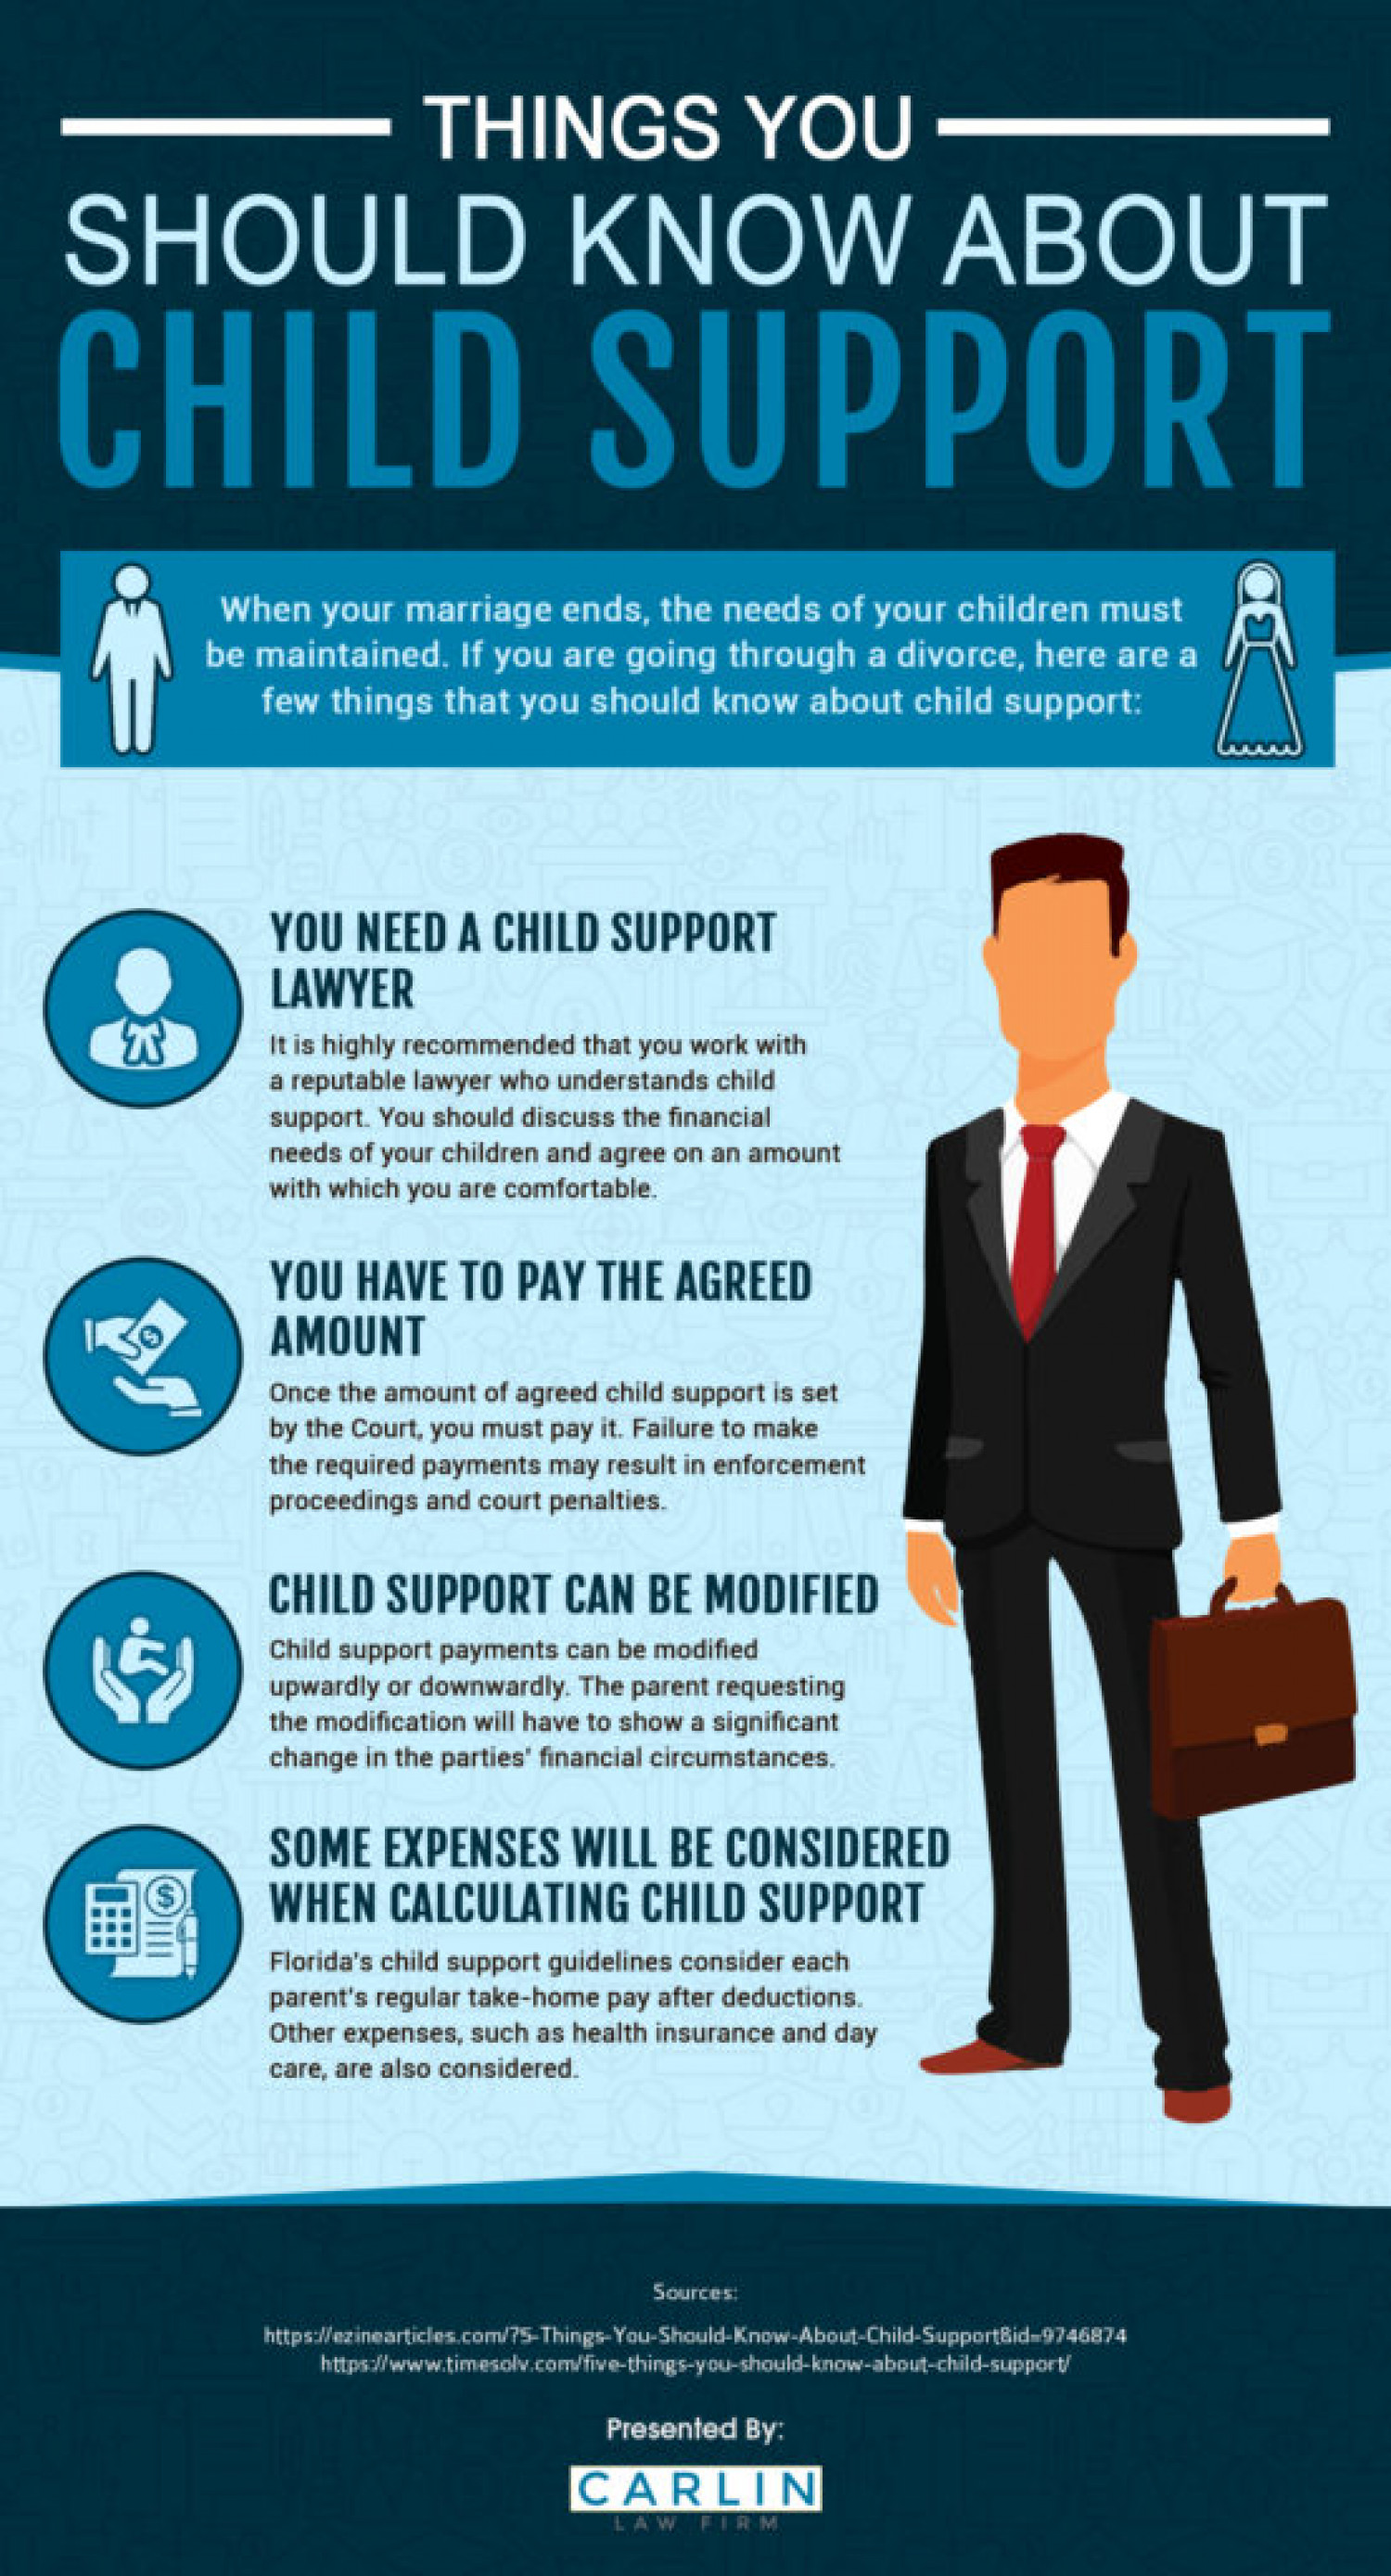 Things You Should Know About Child Support Infographic